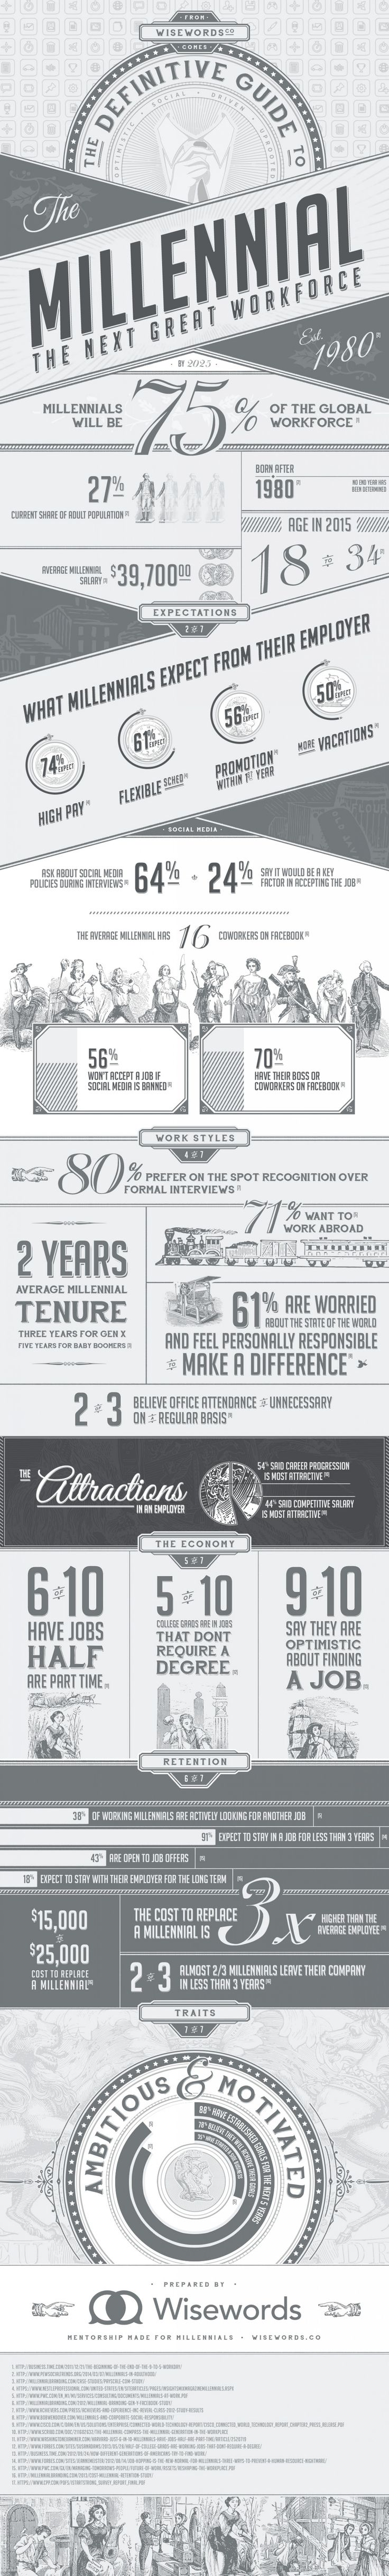 Millennials in the workplace http://visual.ly/definitive-guide-millennial-workforce